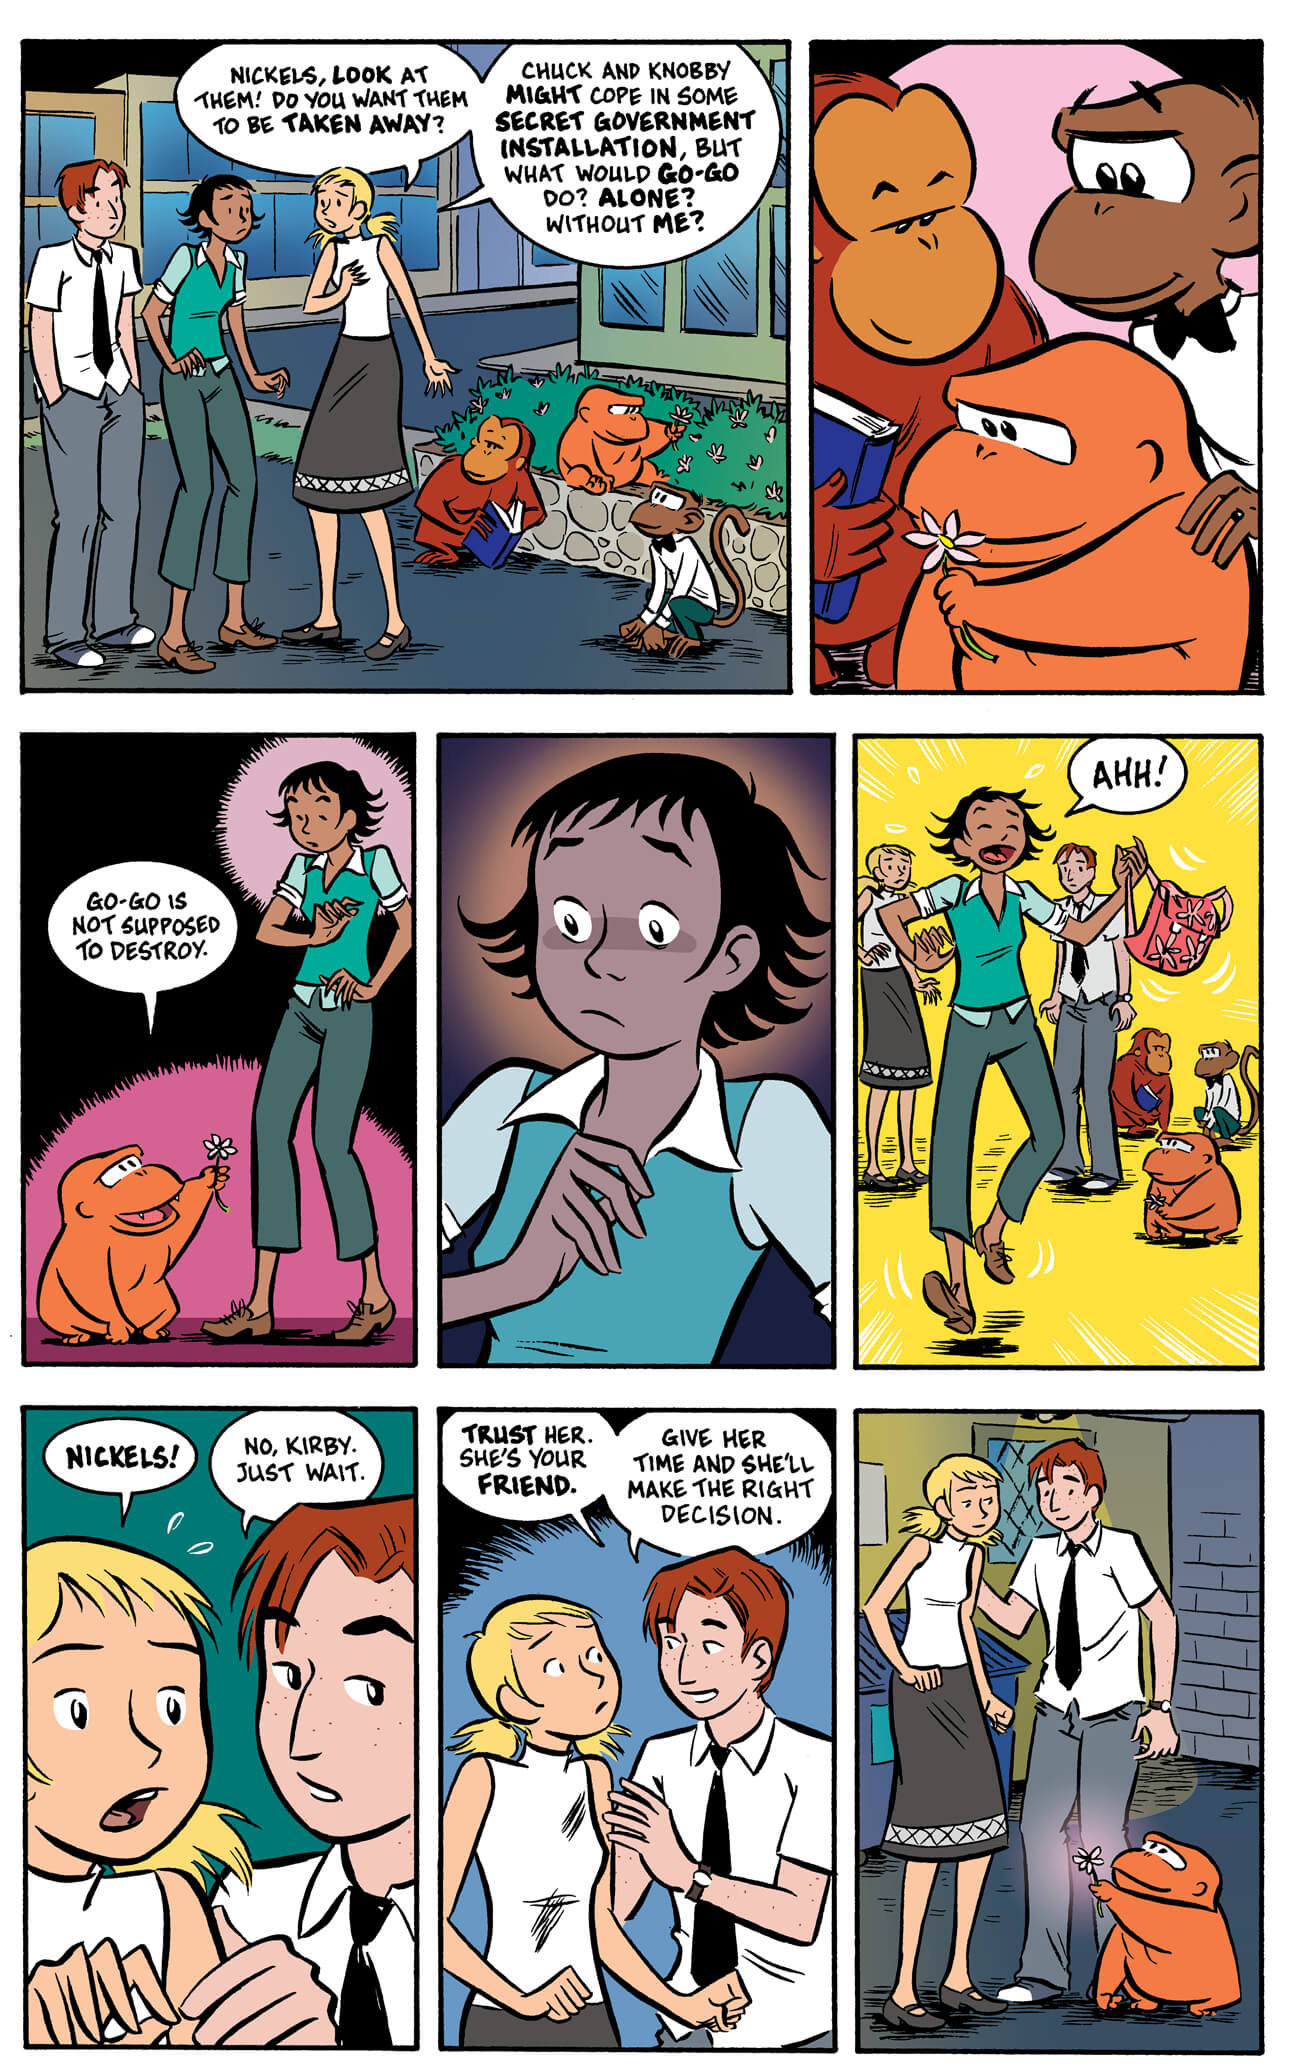 banana sunday by paul tobin & colleen coover, page 81